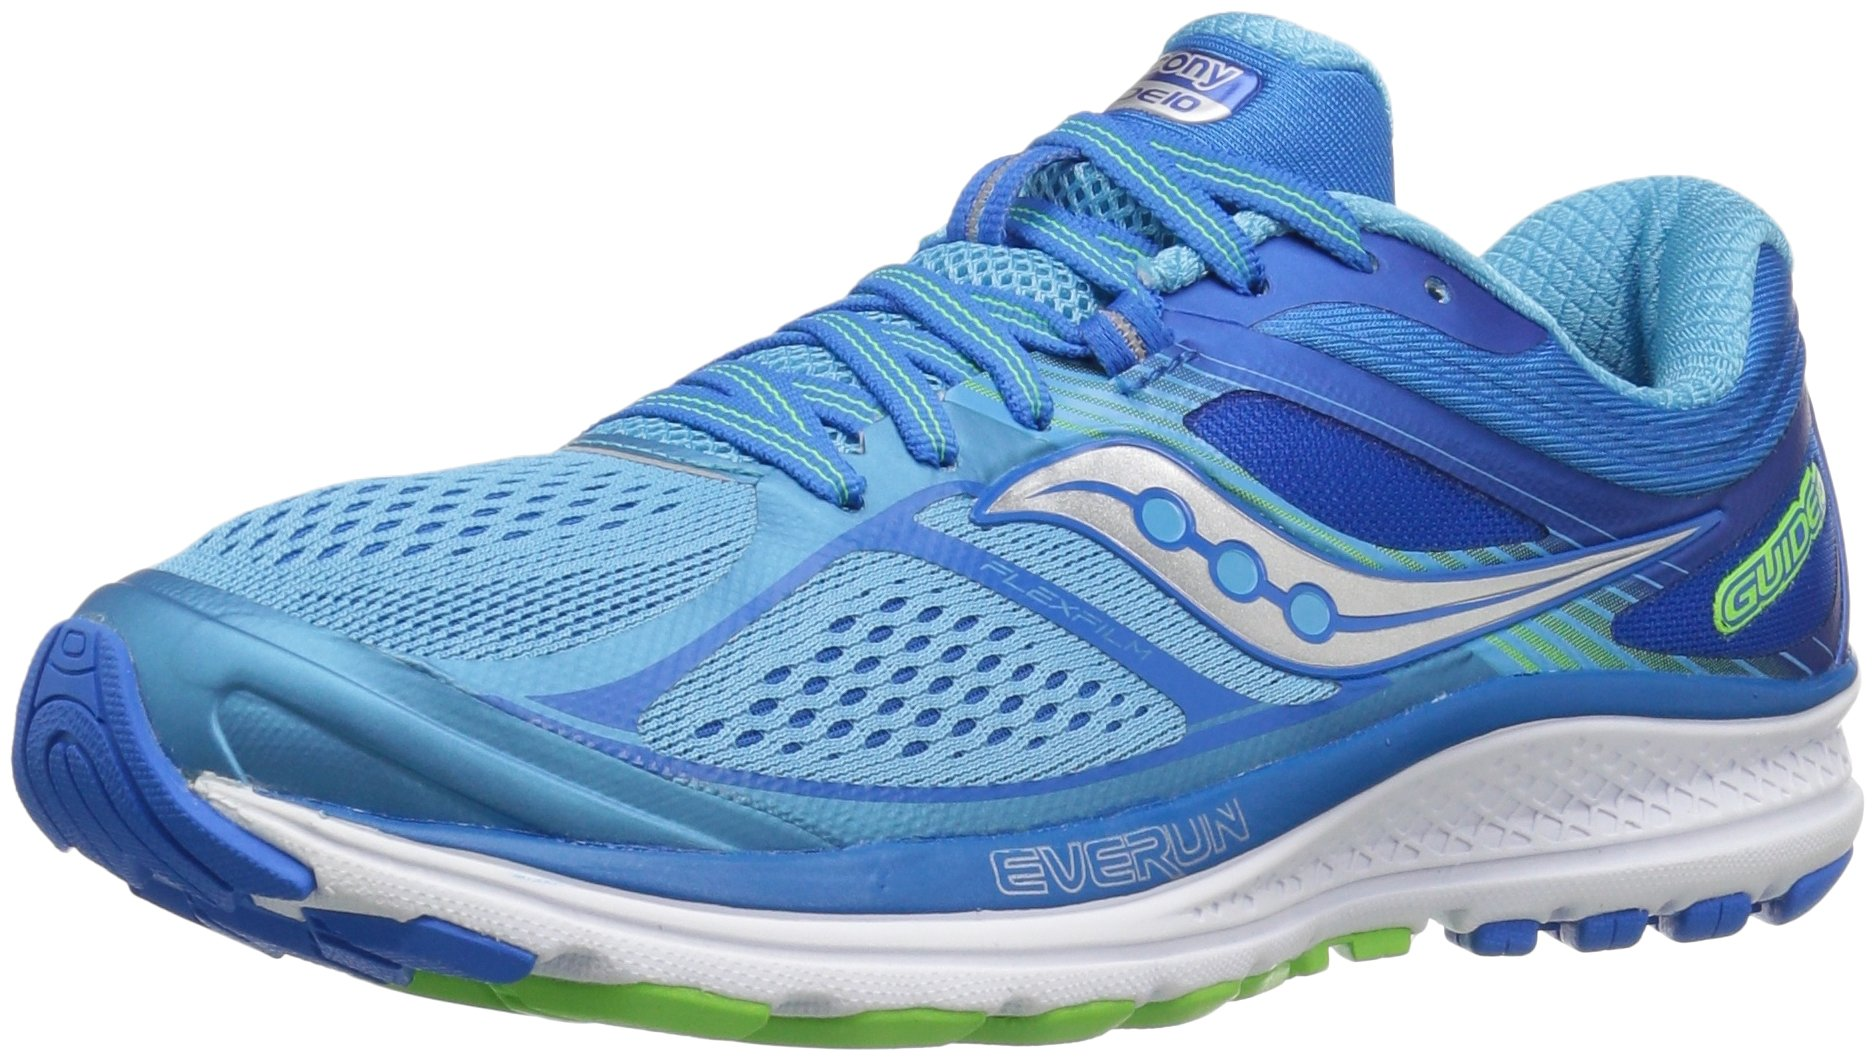 Saucony Women's Guide 10 Running Shoe, Light Blue/Blue, 9 W US